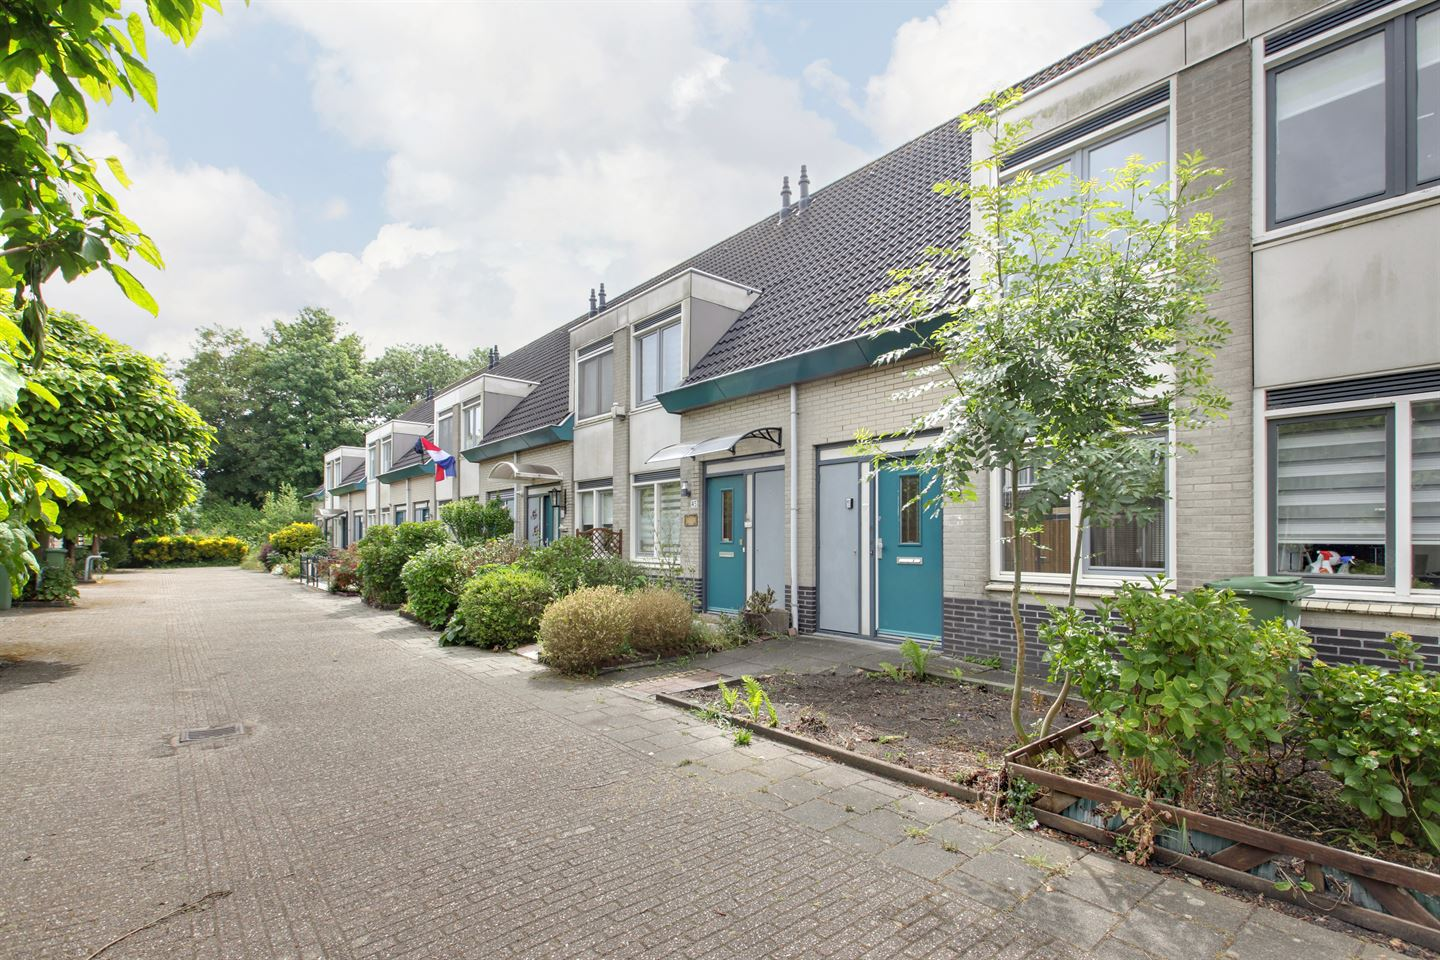 View photo 1 of P. Lieftinckstraat 43